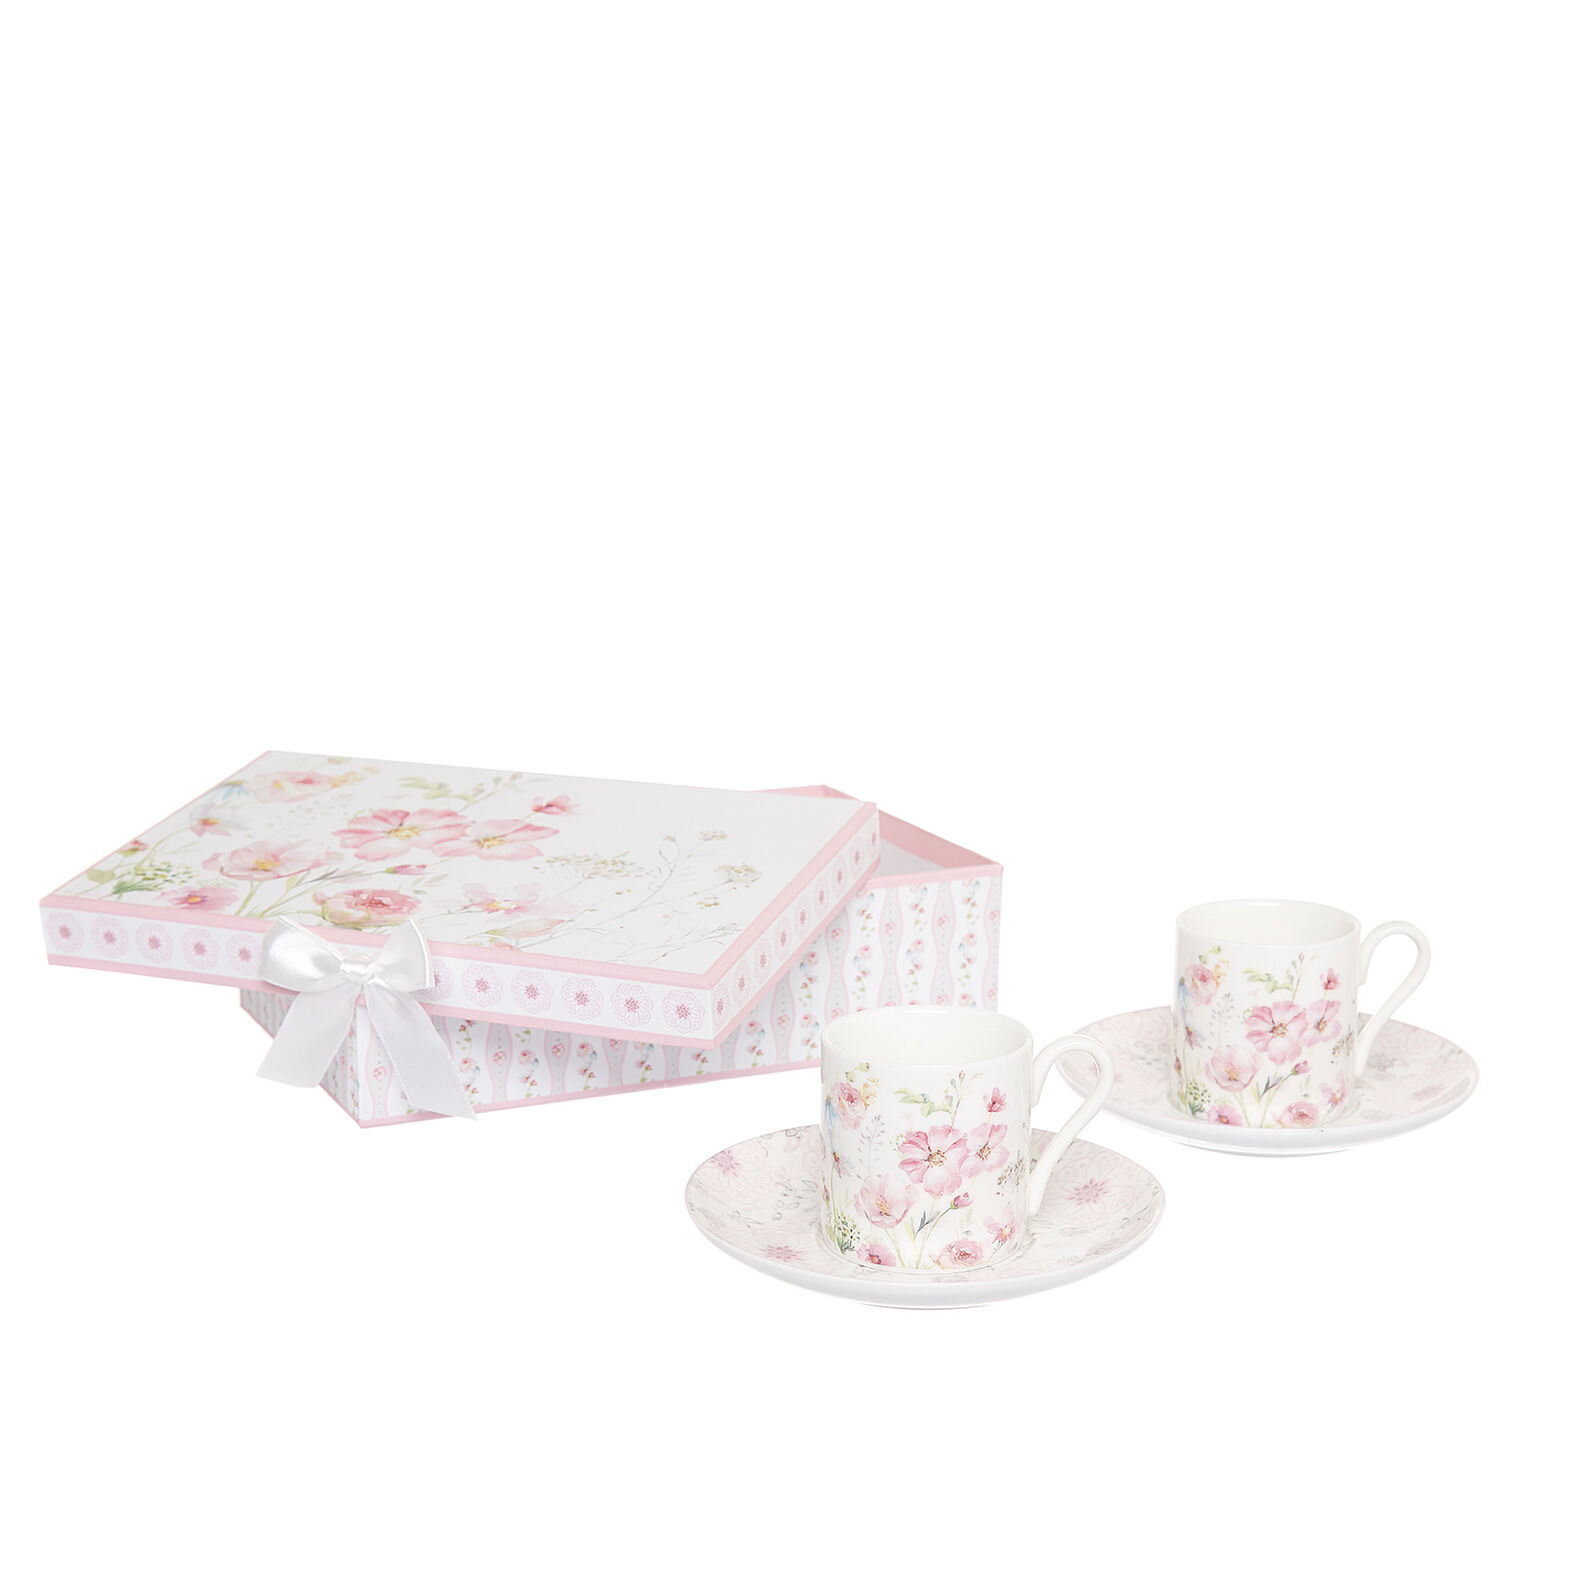 Gift set of 2 porcelain coffee cups with roses